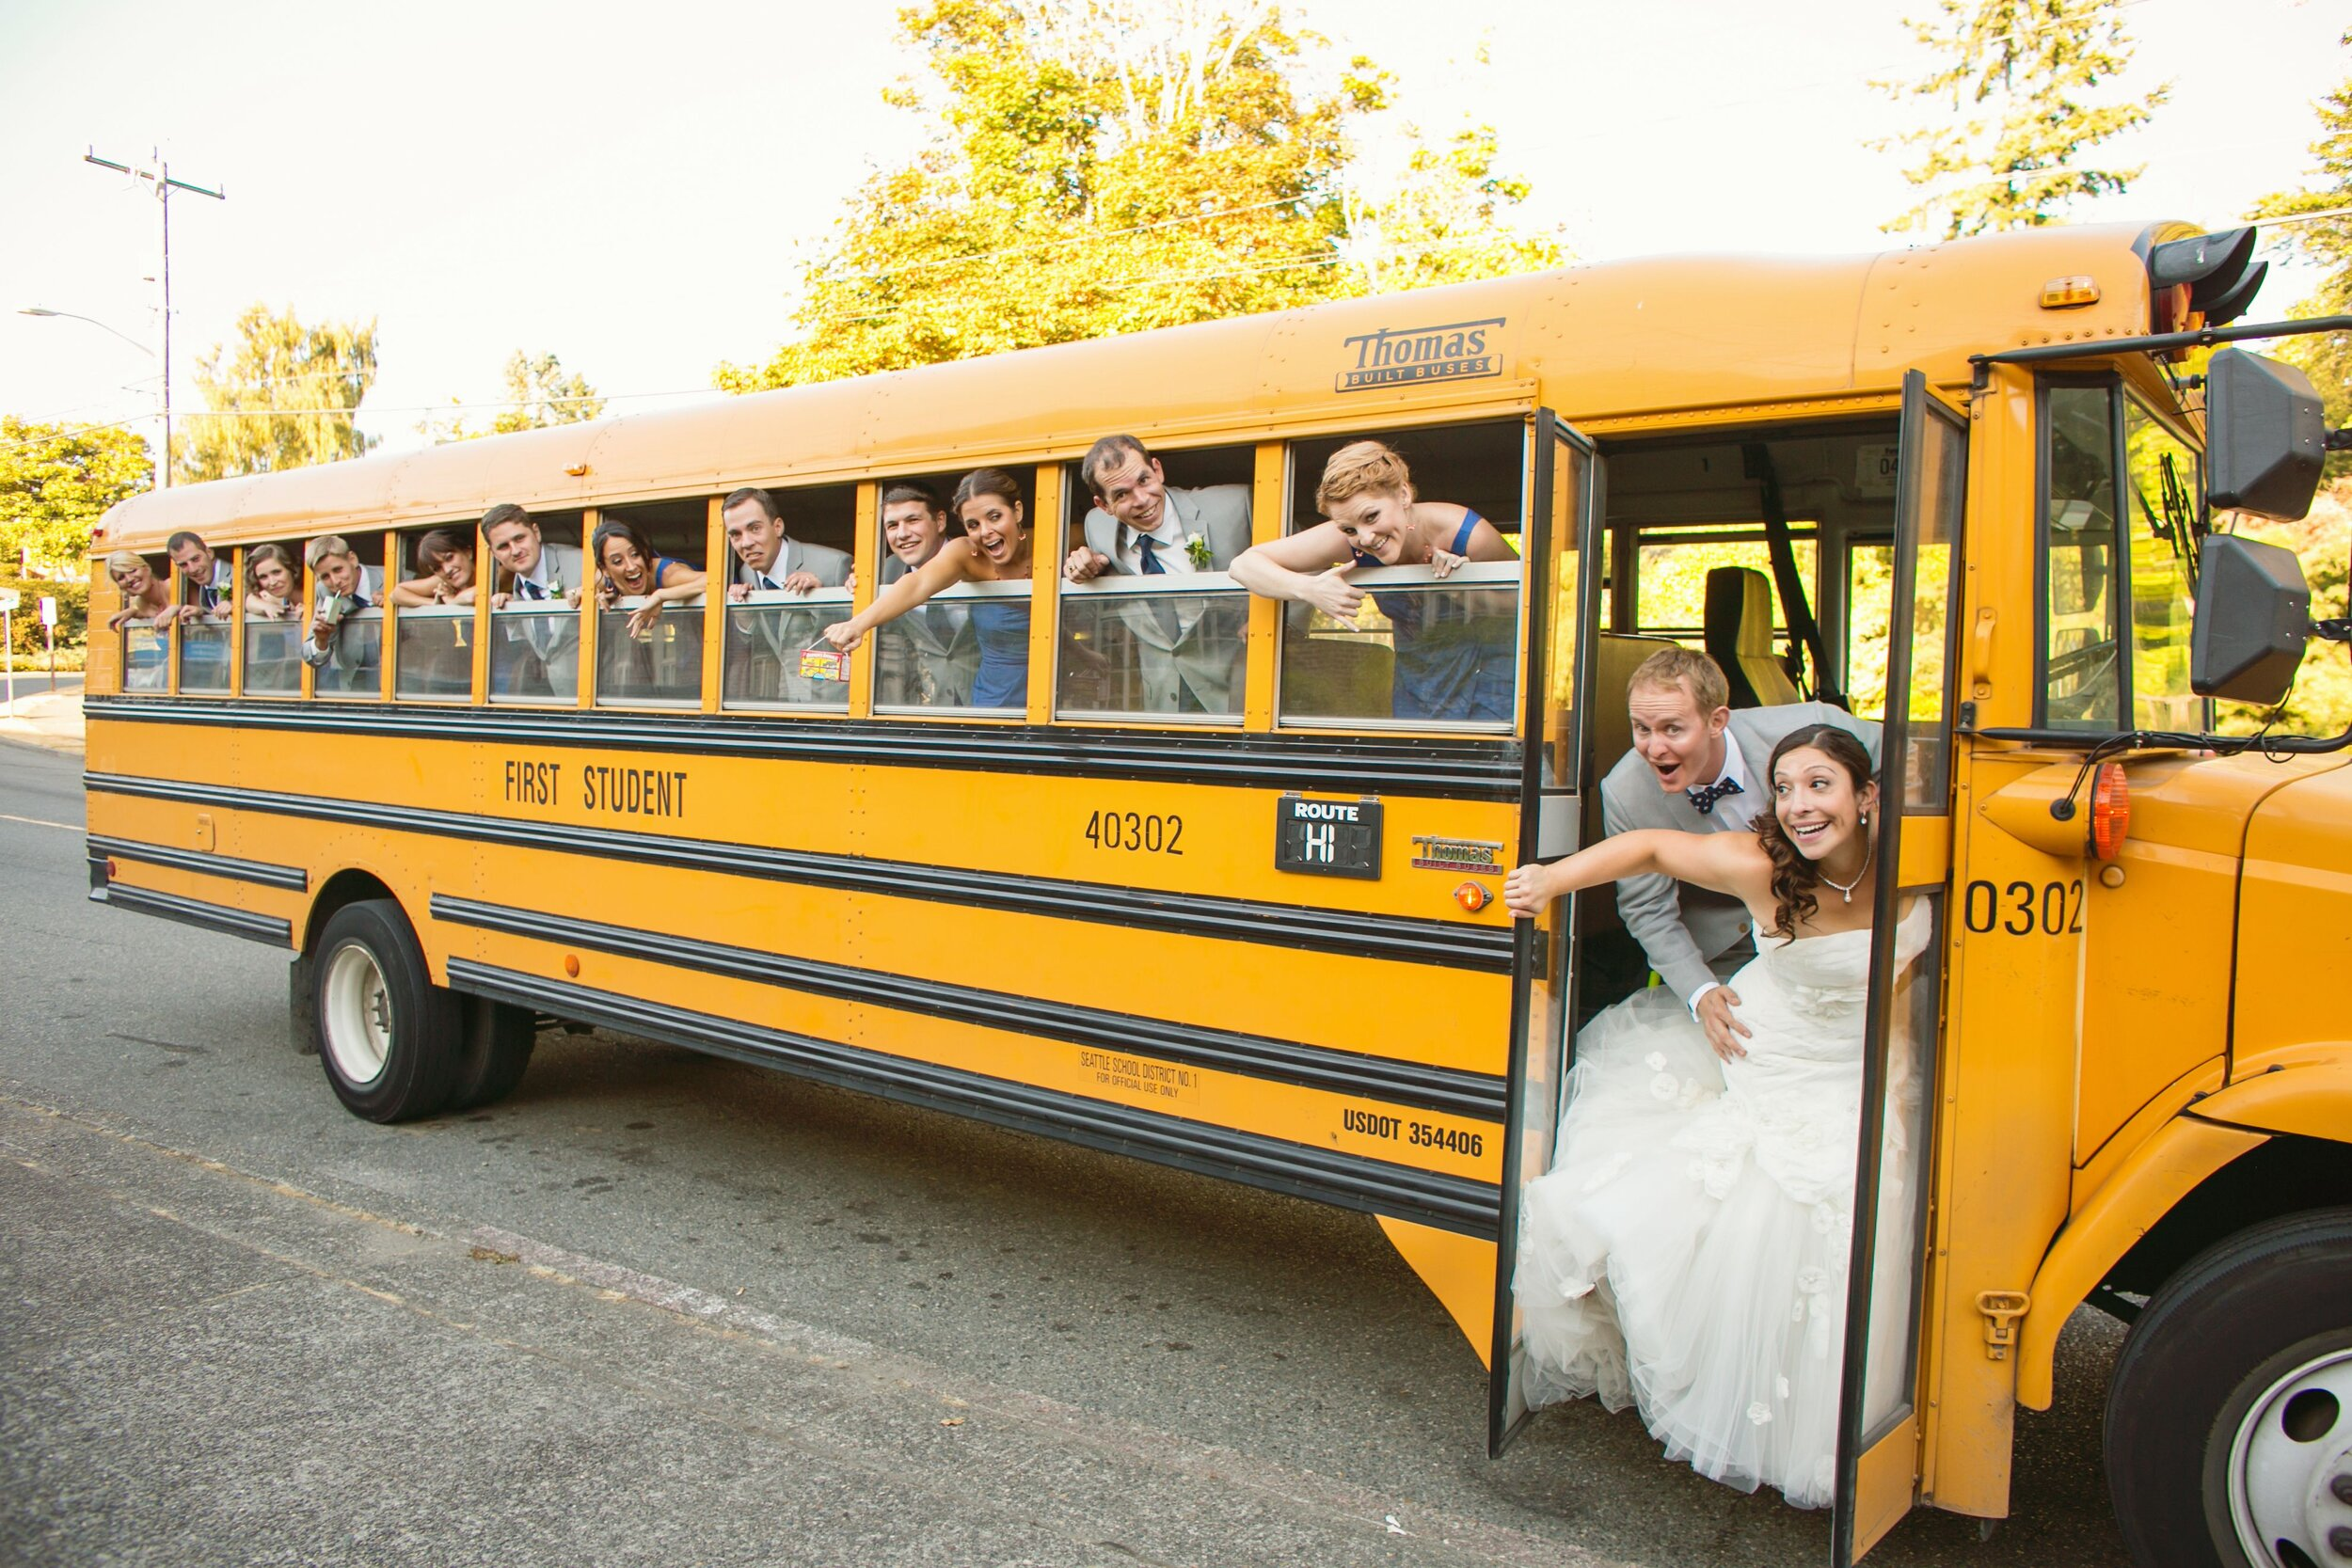 School Bus Rental - School Buses are frequently used for weddings, short trips, shuttling services, etc. They are cheaper than charter buses, but lack amenities. School buses fit up to 60 people.